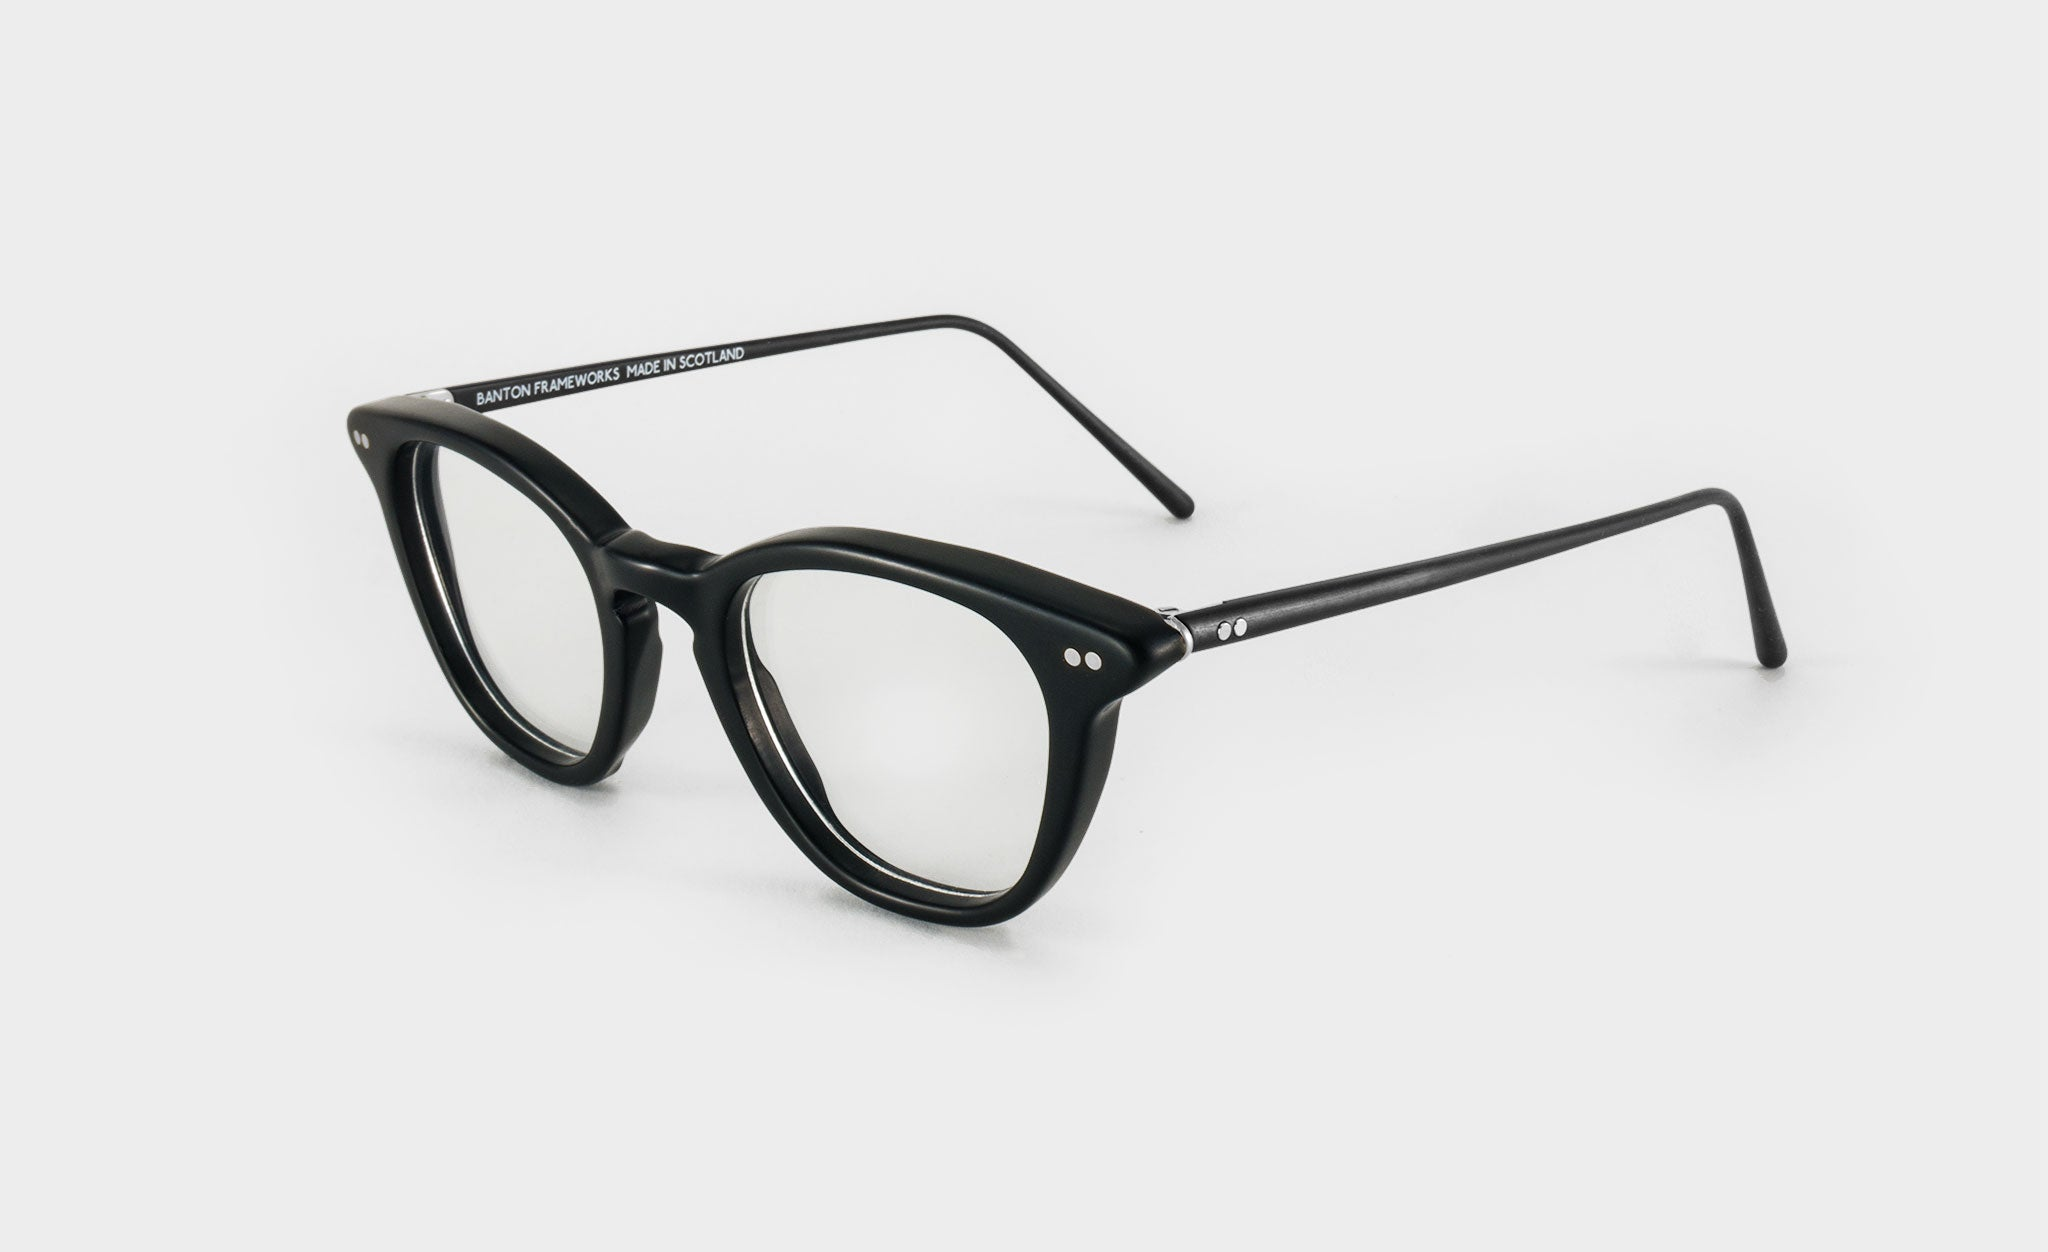 matte black glasses frame side view